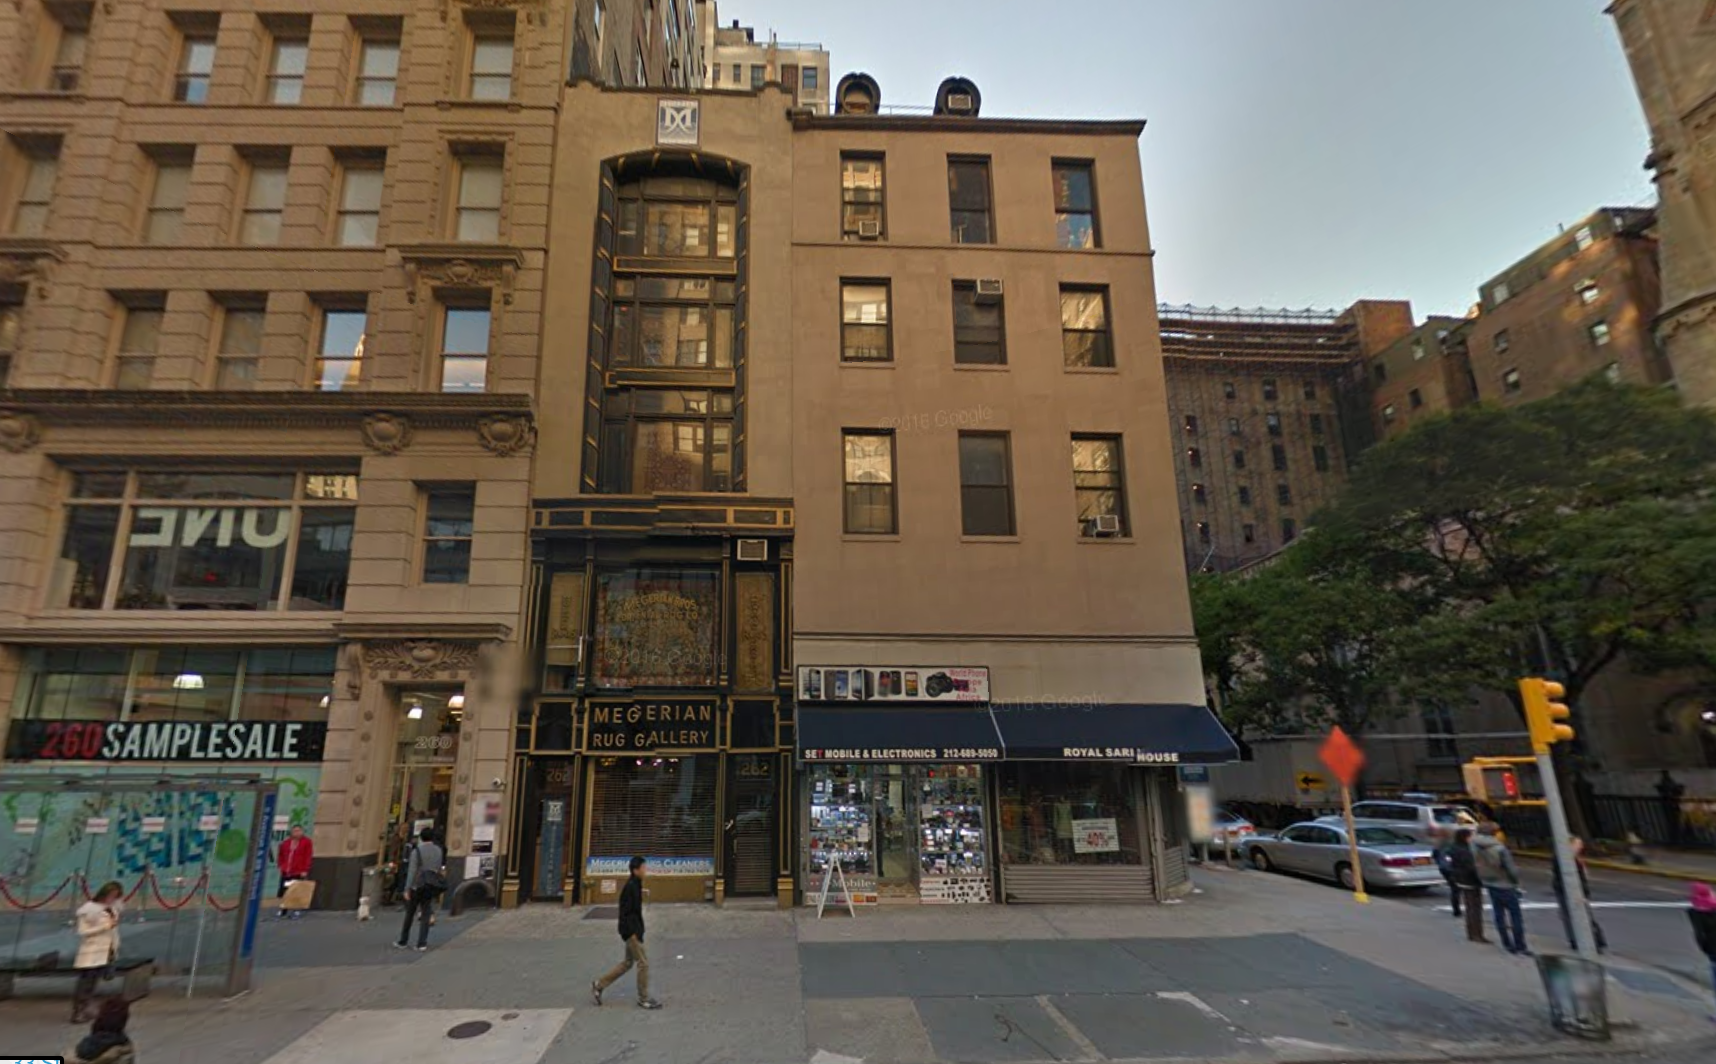 262 and 264 Fifth Avenue, image via Google Maps